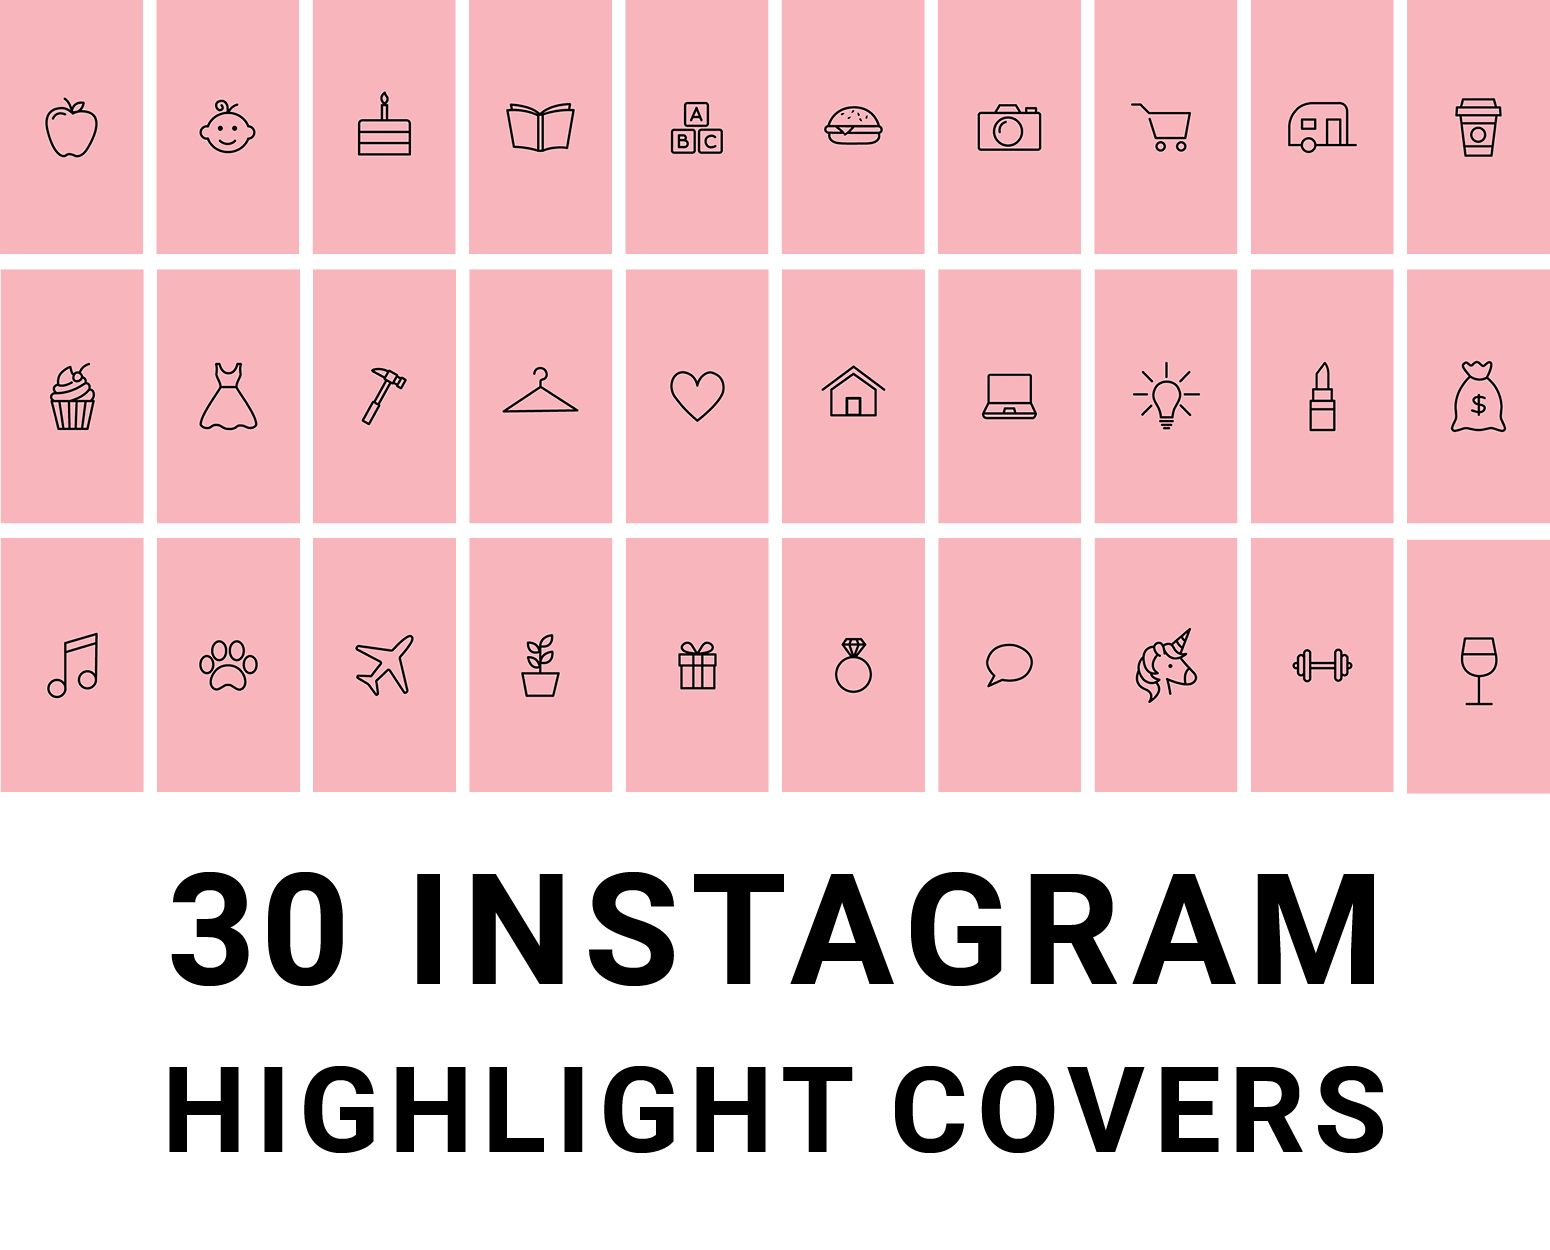 Blush Pastel Pink And Black Instagram Highlights Icon Covers Instantly Download These And Add Them To Your Instagram Highlight Icons Pink Instagram Instagram